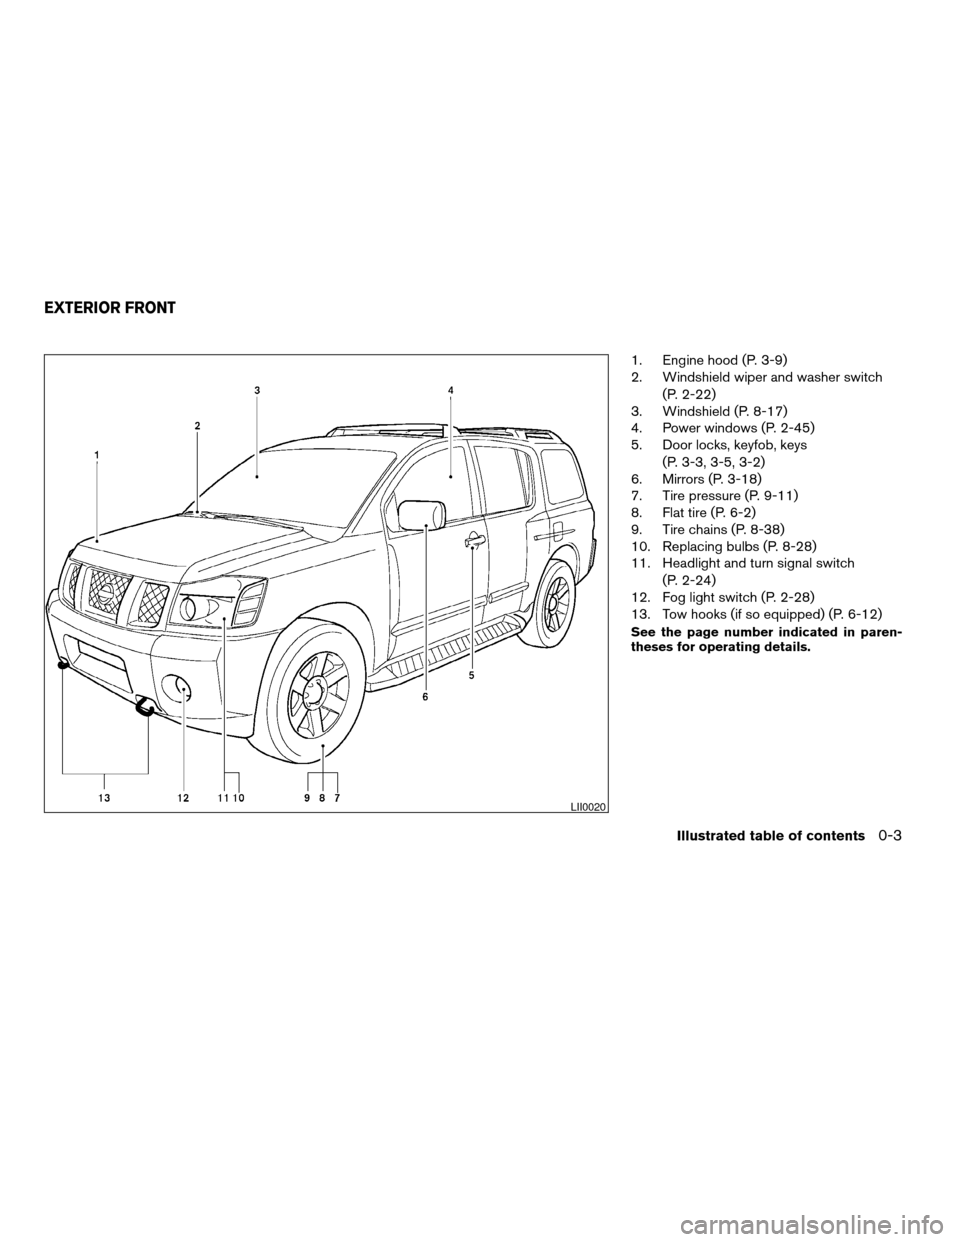 NISSAN ARMADA 2005 1.G Owners Manual